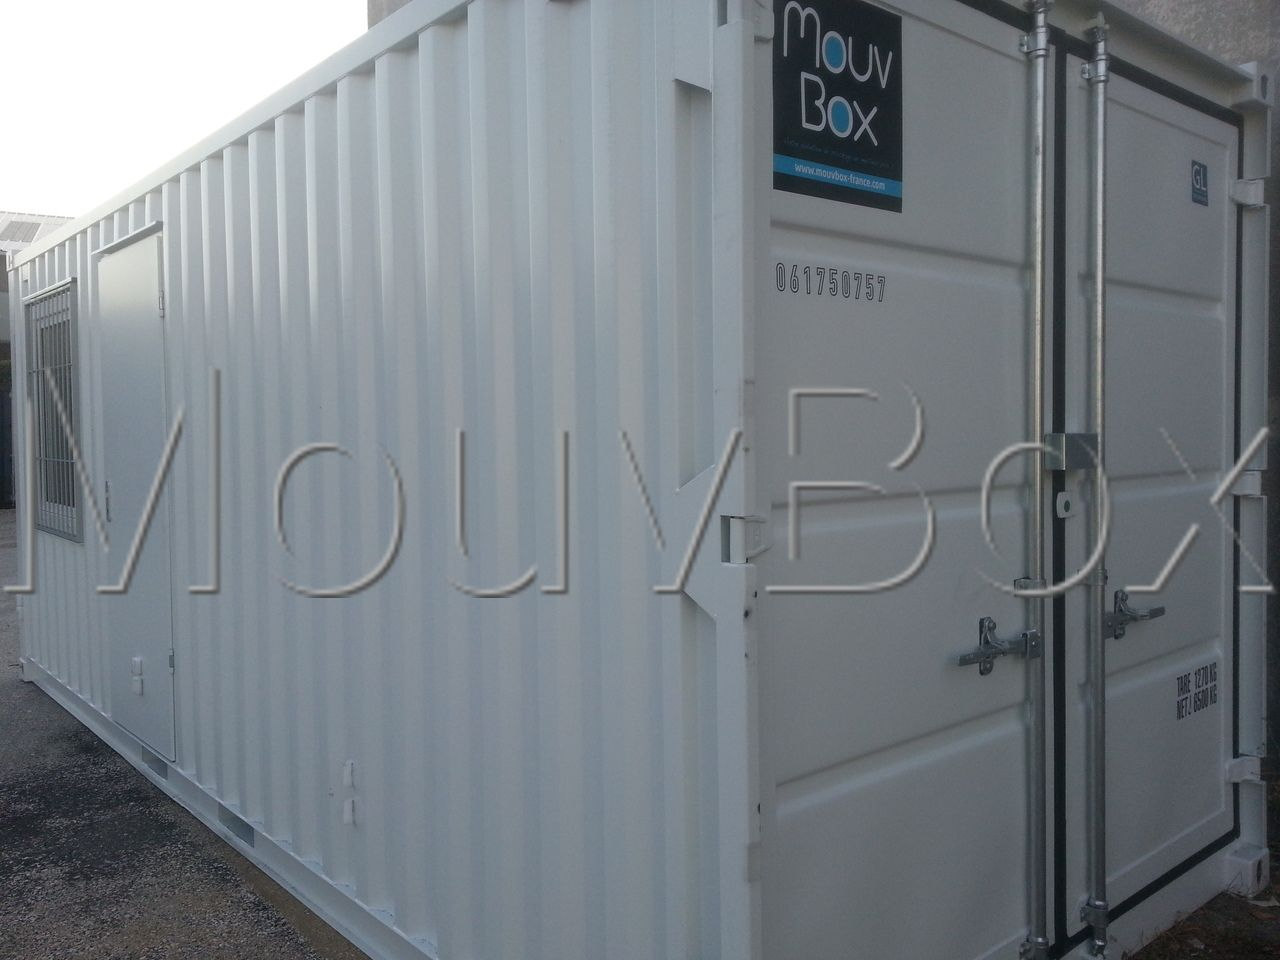 mouvbox france container 20 dry neuf bureau stockage. Black Bedroom Furniture Sets. Home Design Ideas